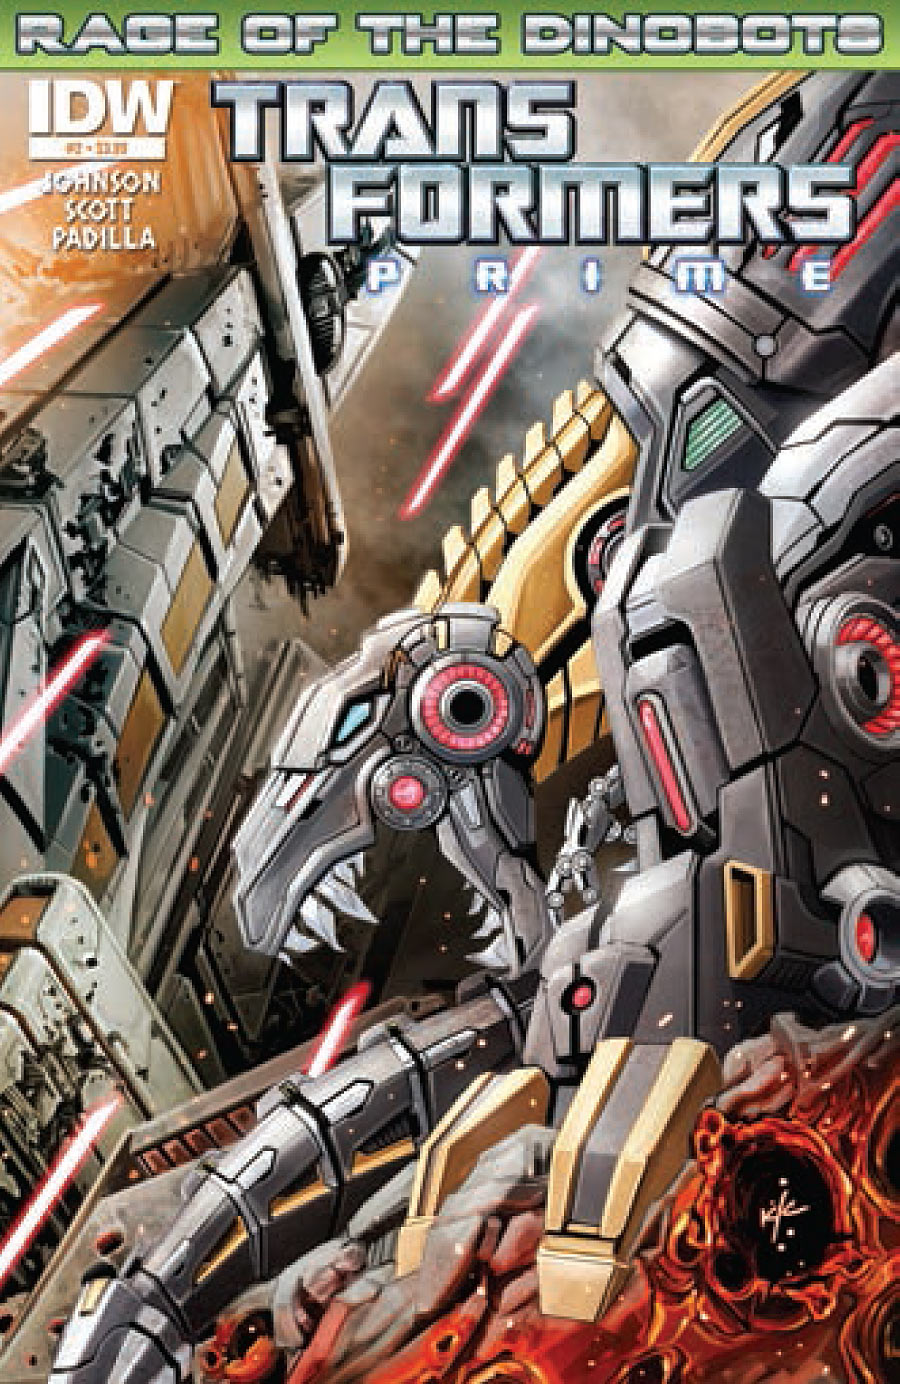 Transformers: Prime - Rage of the Dinobots #2